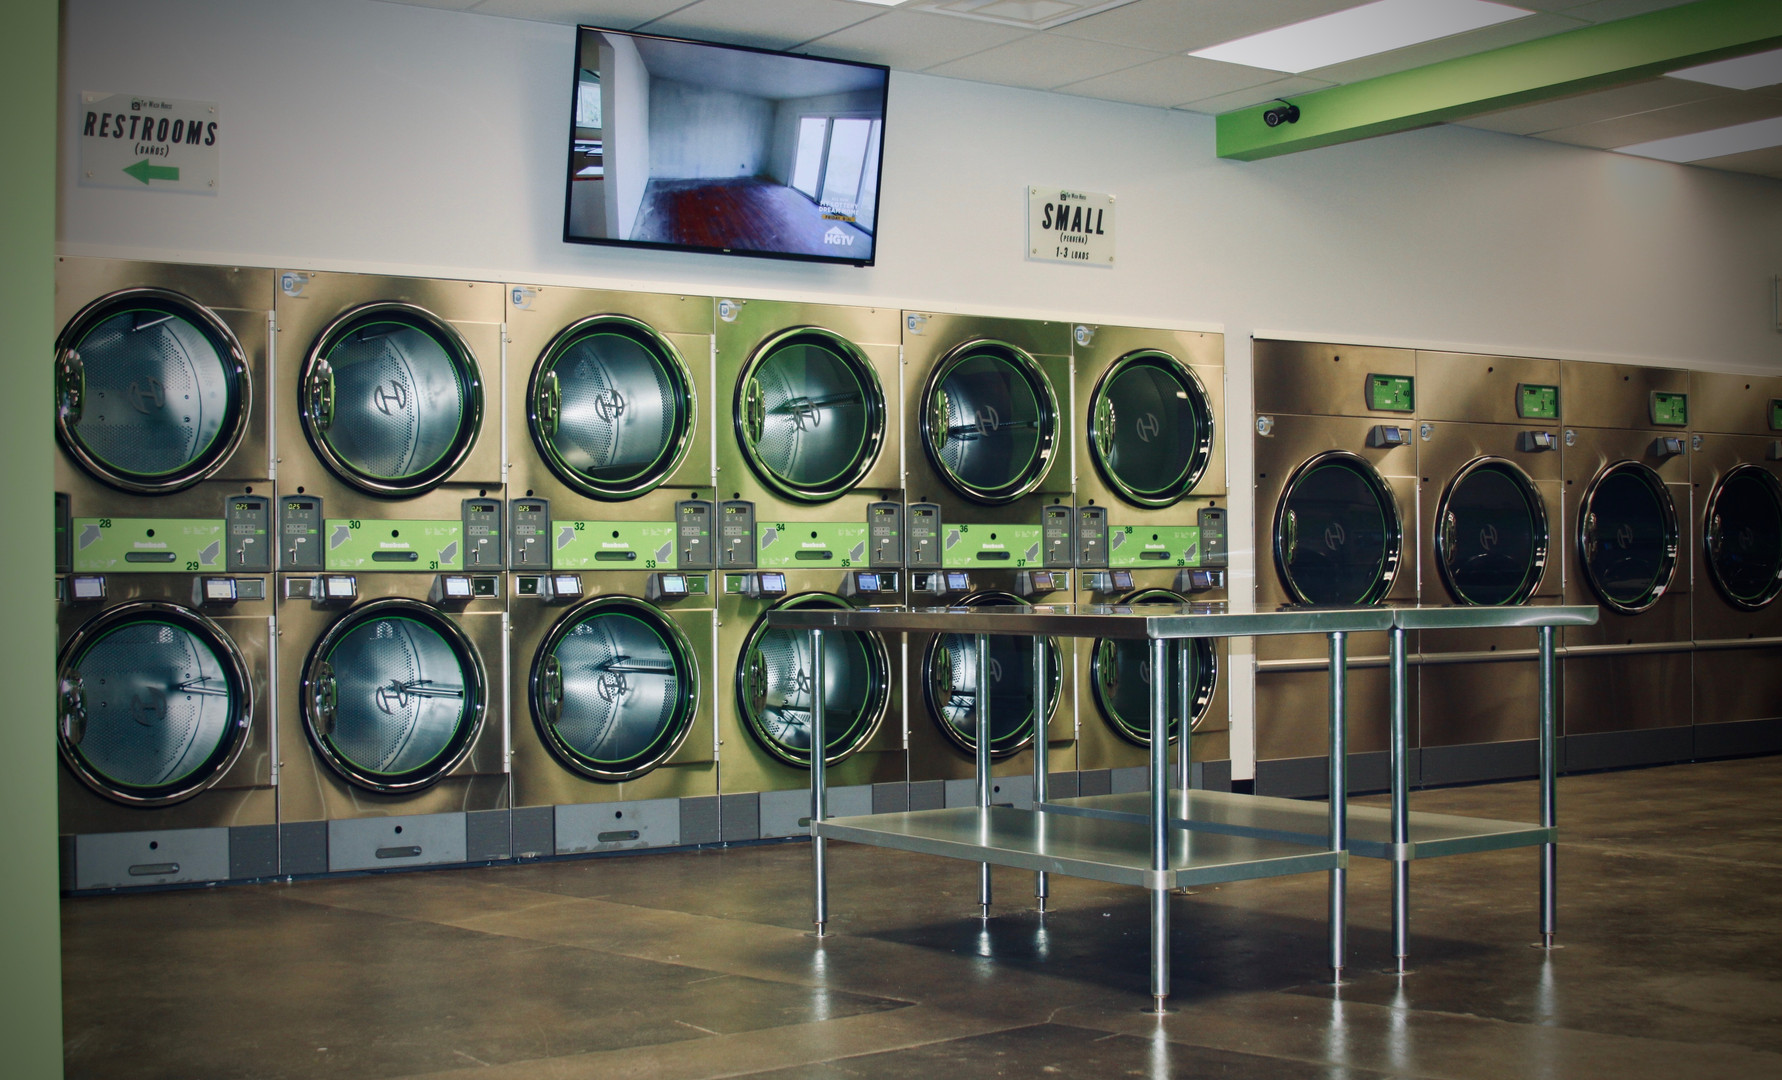 Small Dryers